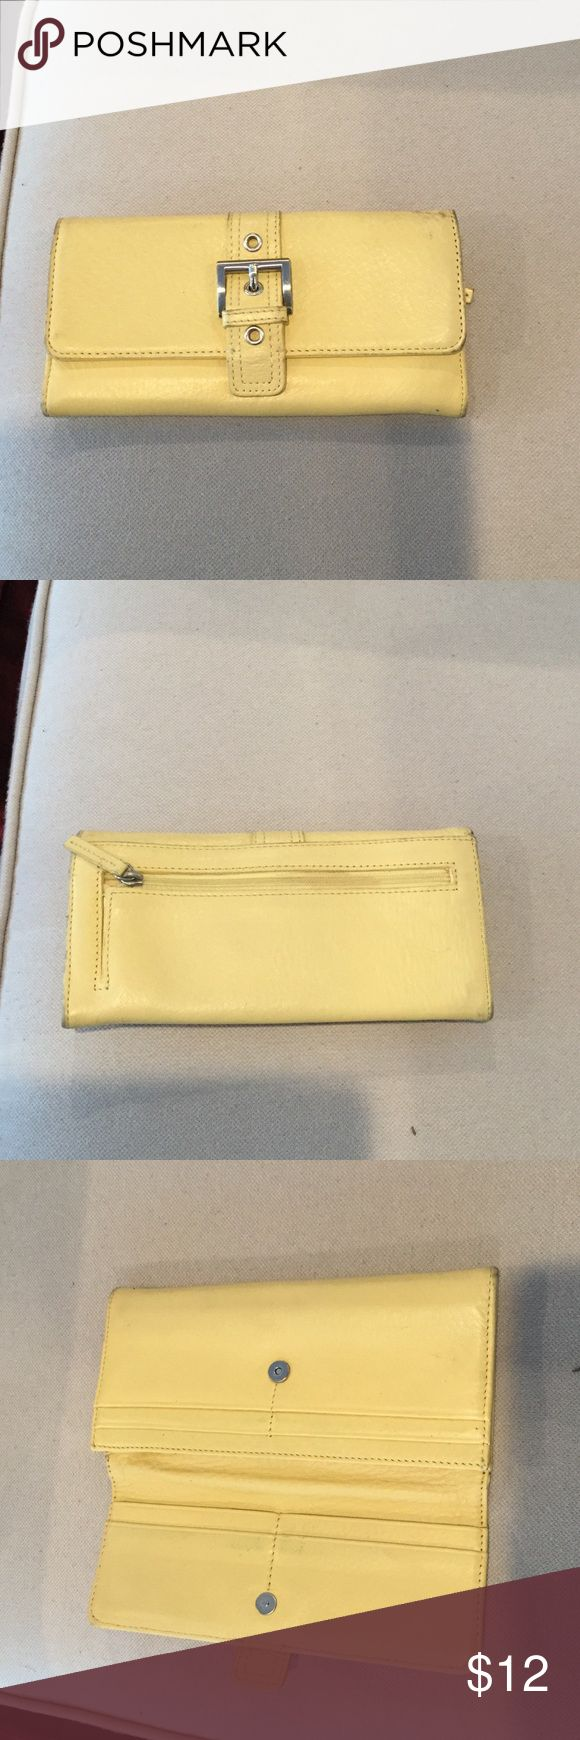 Talbots Yellow Leather Wallet Pebbled leather wallet by Talbots.  Light yellow with silver hardware.  A few dark scuffs as seen in the images, but still plenty of life left. Talbots Bags Wallets